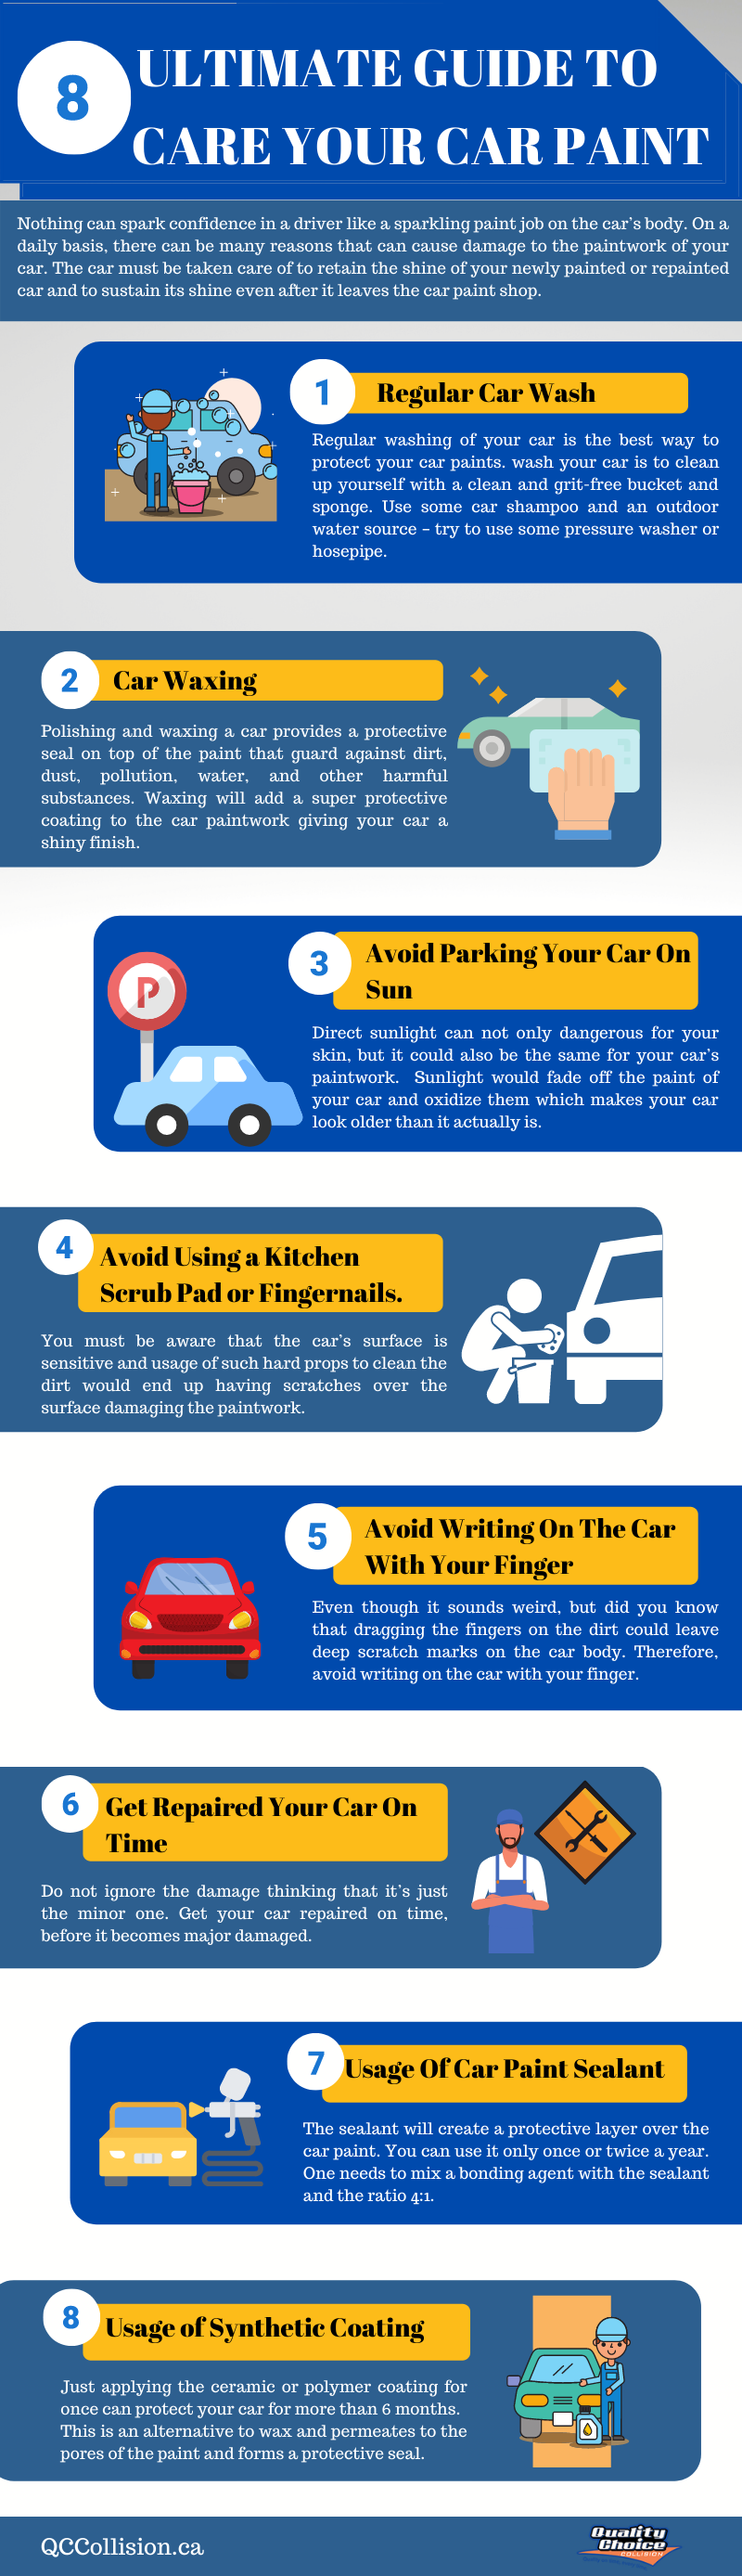 Ultimate guide to care your car paint